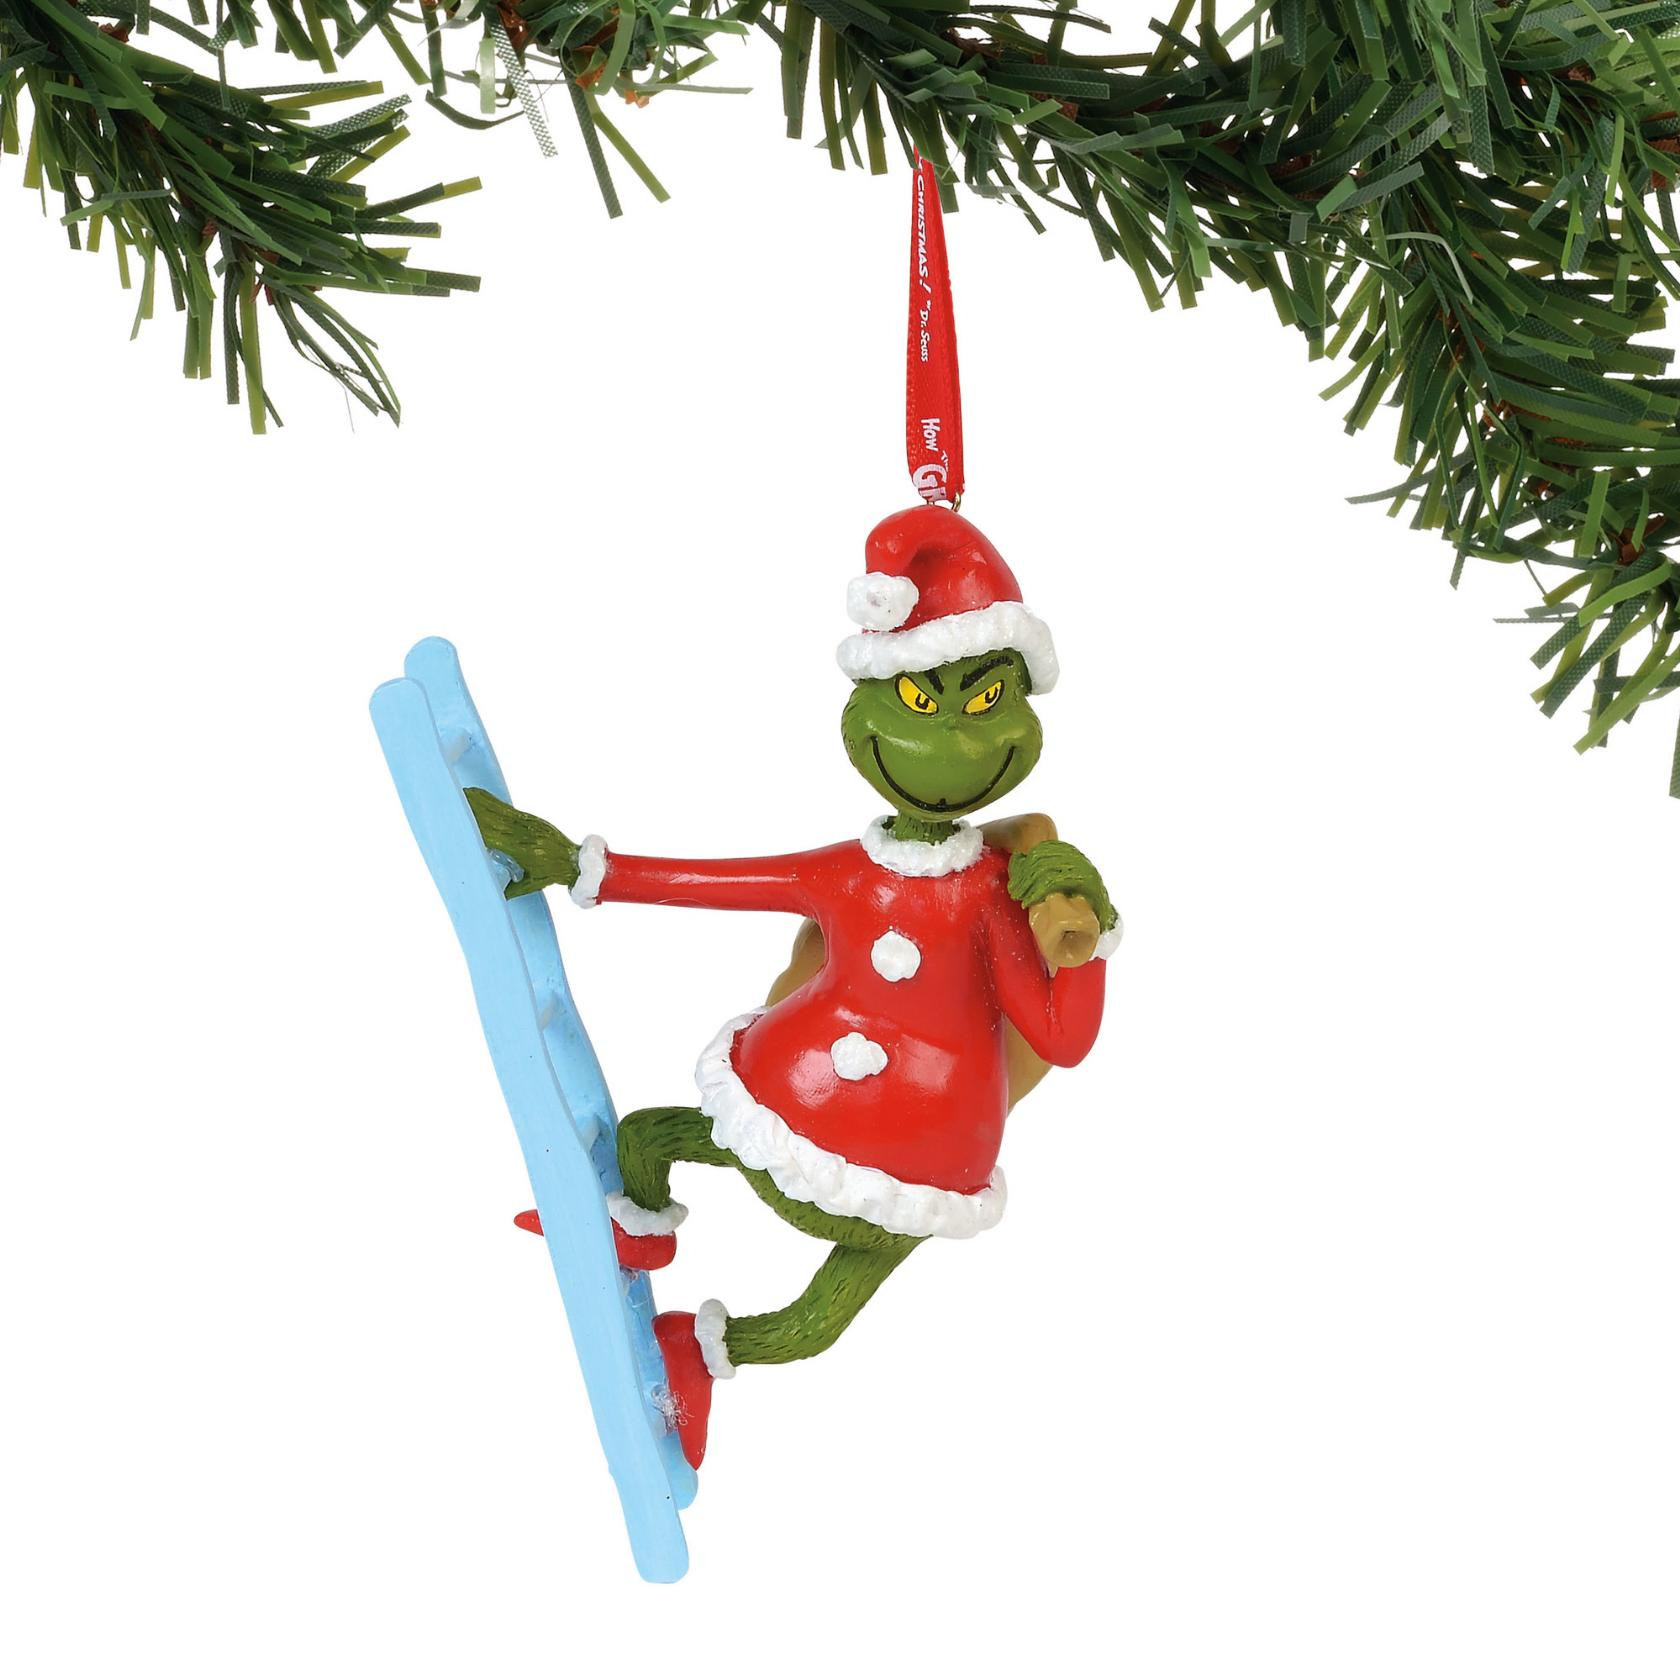 Department 56 6000305 Grinch On A Ladder Ornament